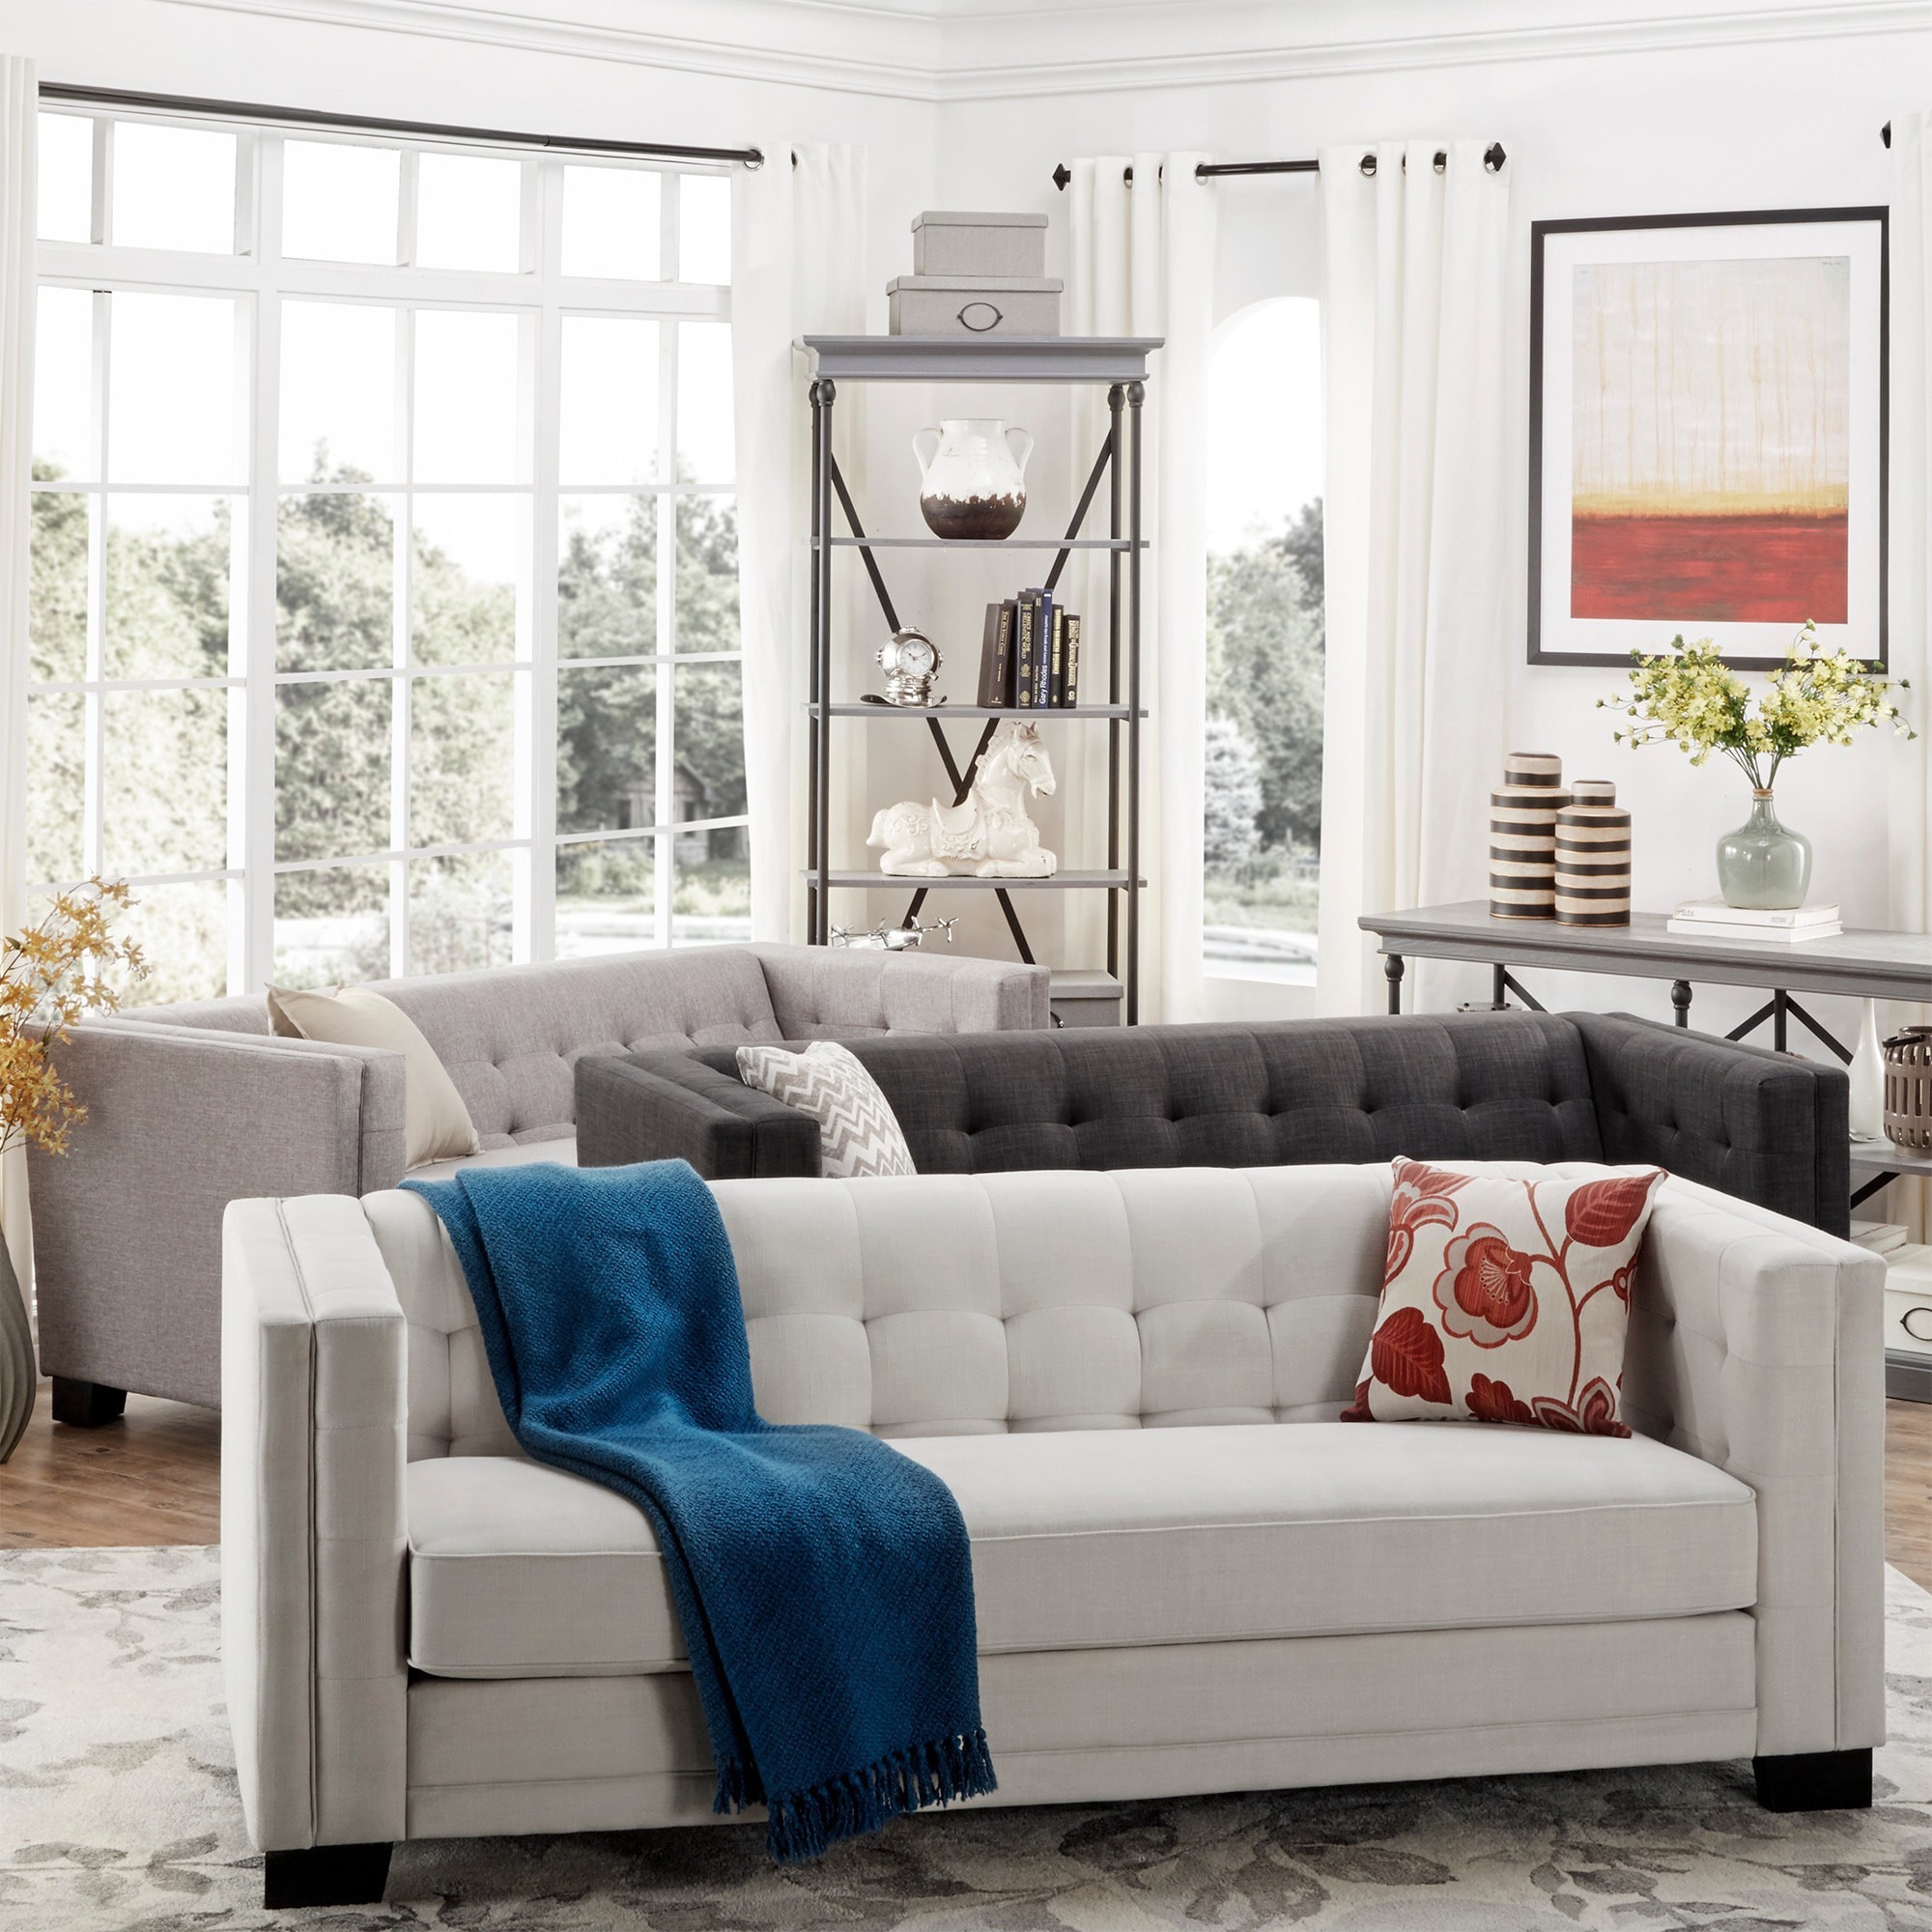 Shop hamilton modern linen sofa with button tufting by inspire q bold on sale free shipping today overstock com 9400029